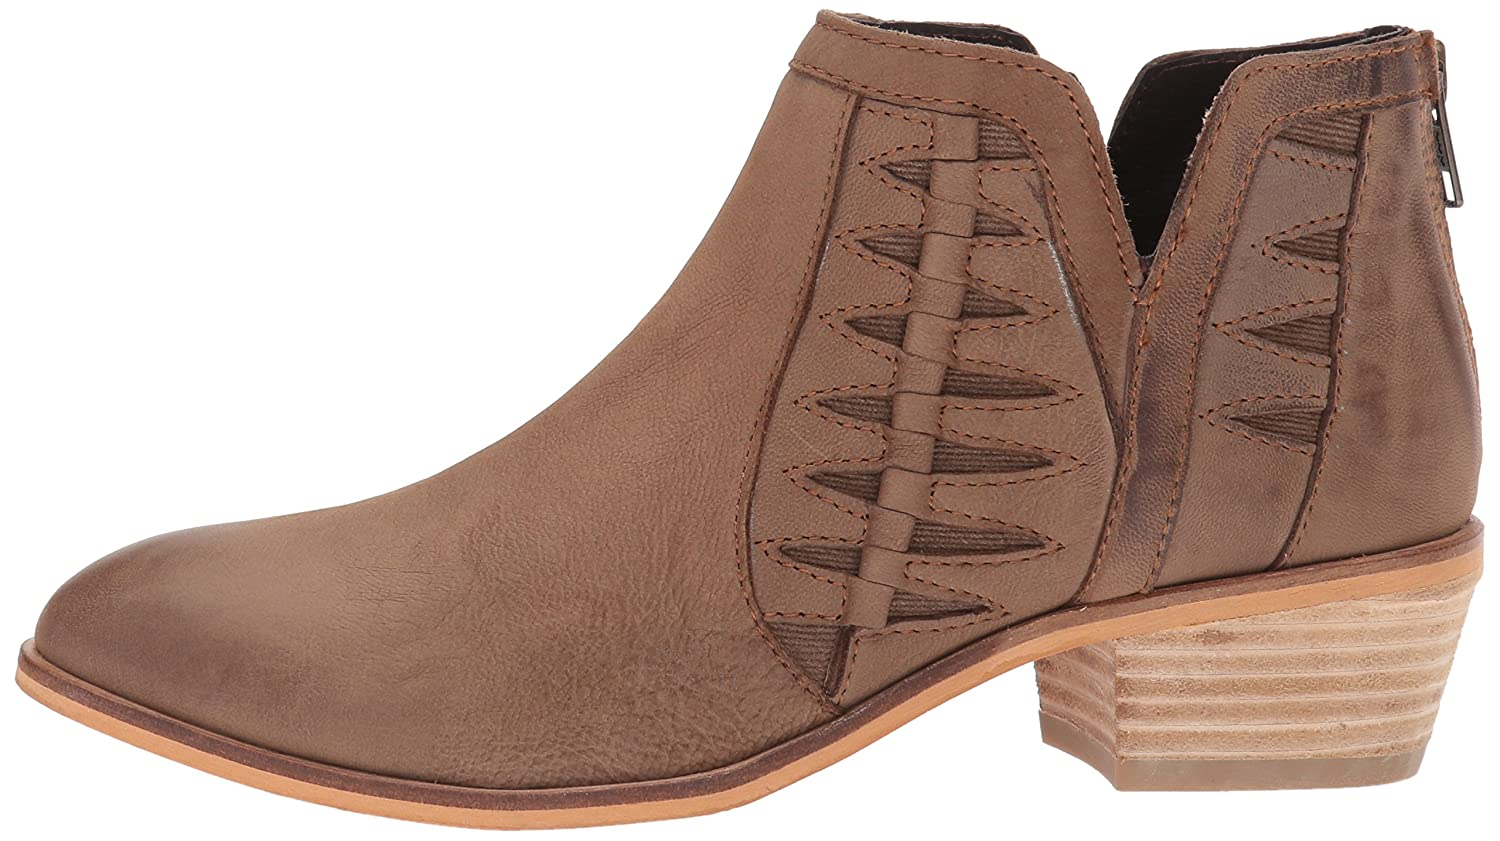 Charles by Charles David Women's Yuma Ankle Boot B06XKLSYG1 6.5 B(M) US|Cognac